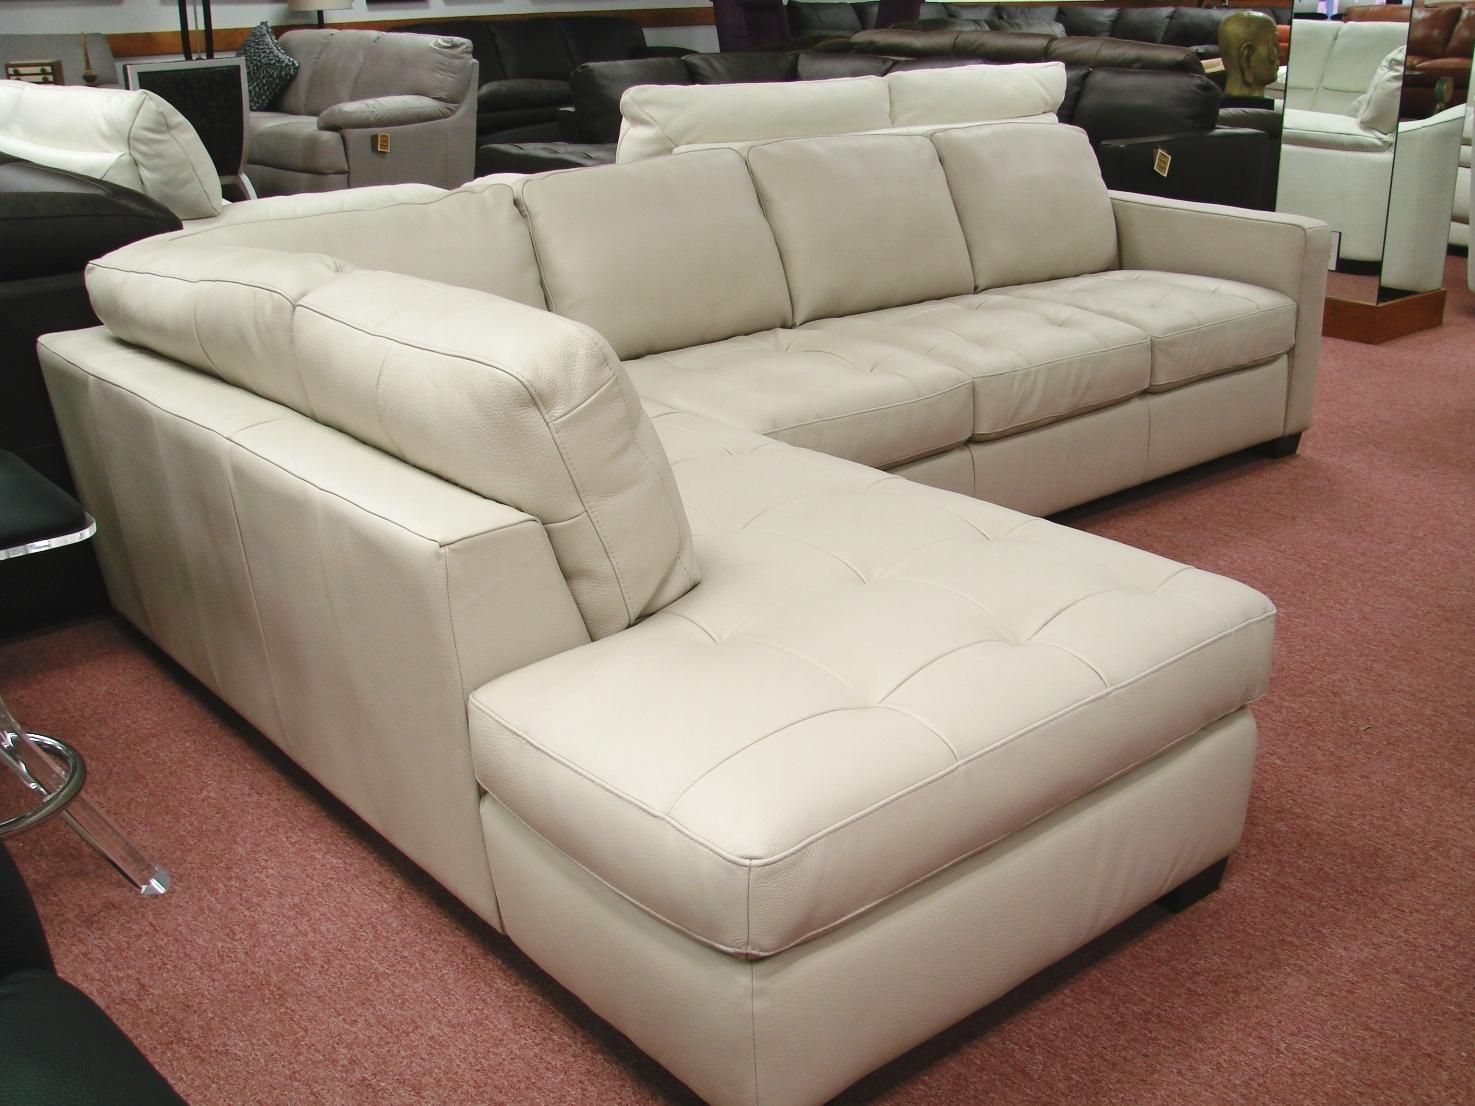 Furniture: Sectional Leather Sofas | Leather Sectionals For Sale Pertaining To Leather Sofa Sectionals For Sale (View 4 of 20)